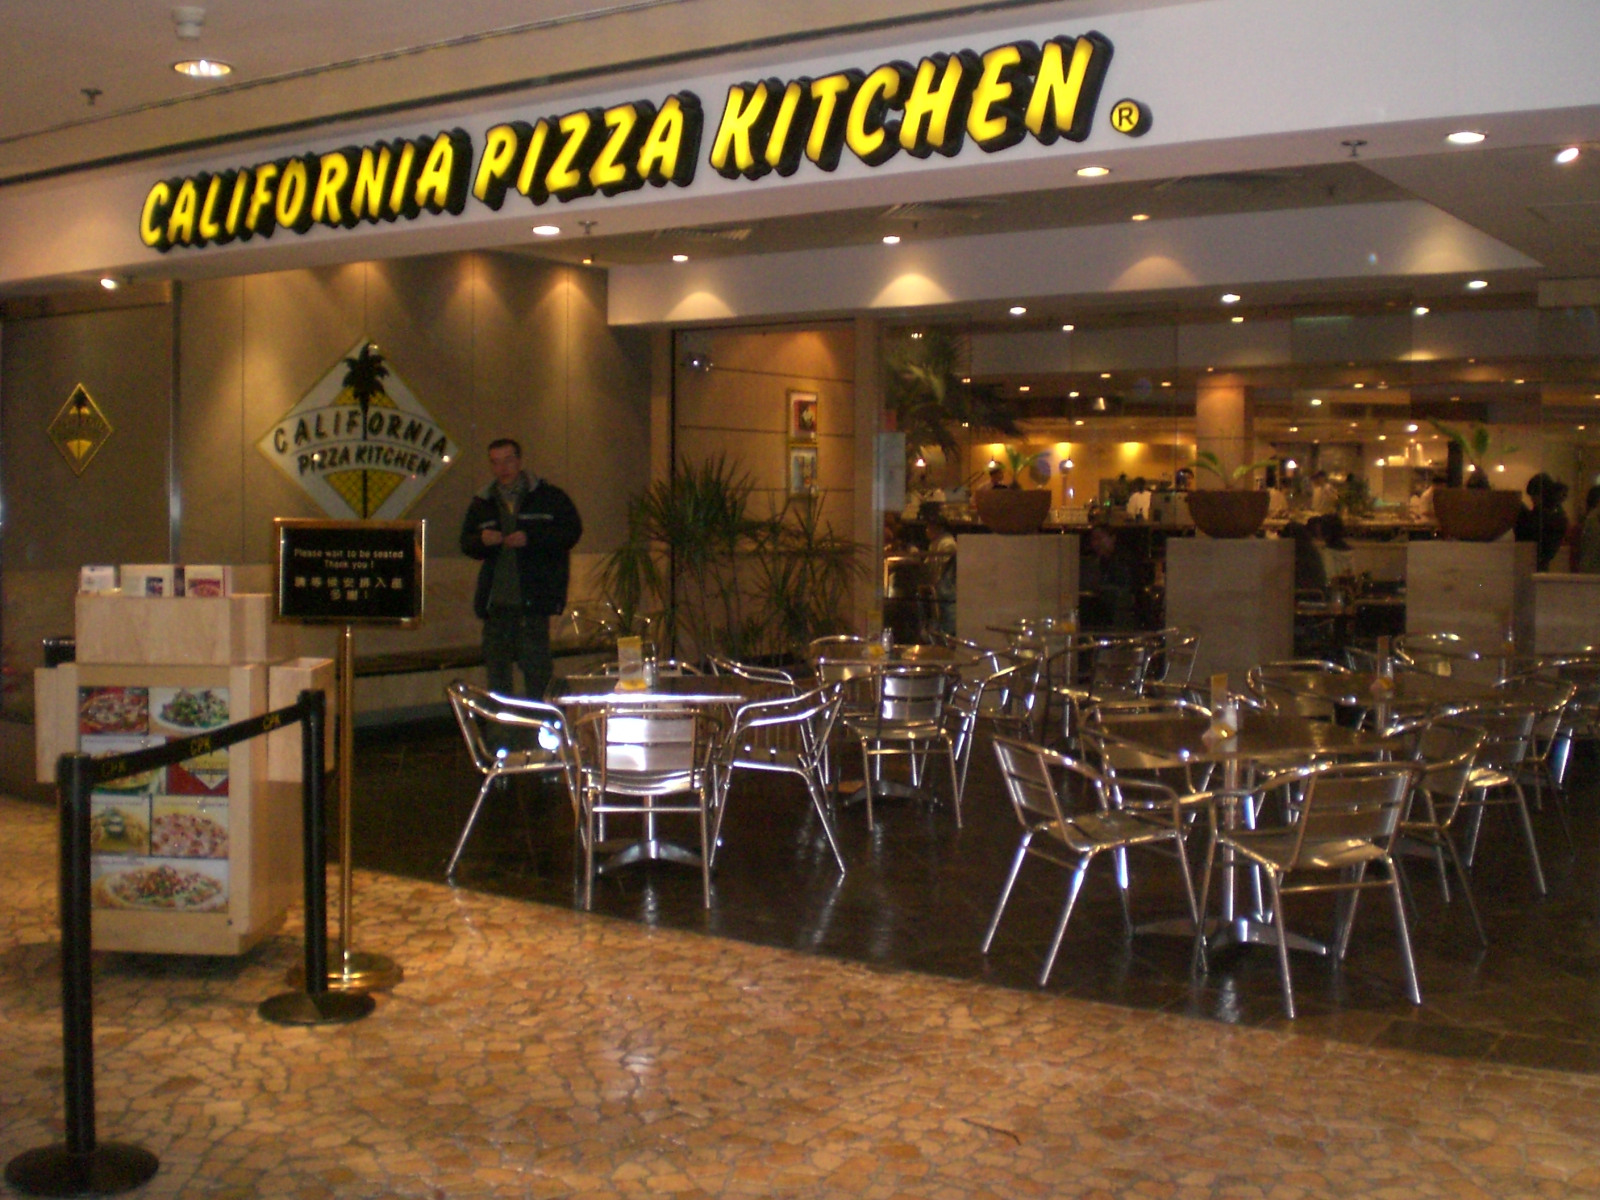 California Pizza Kitchen Pantry Station Trainer